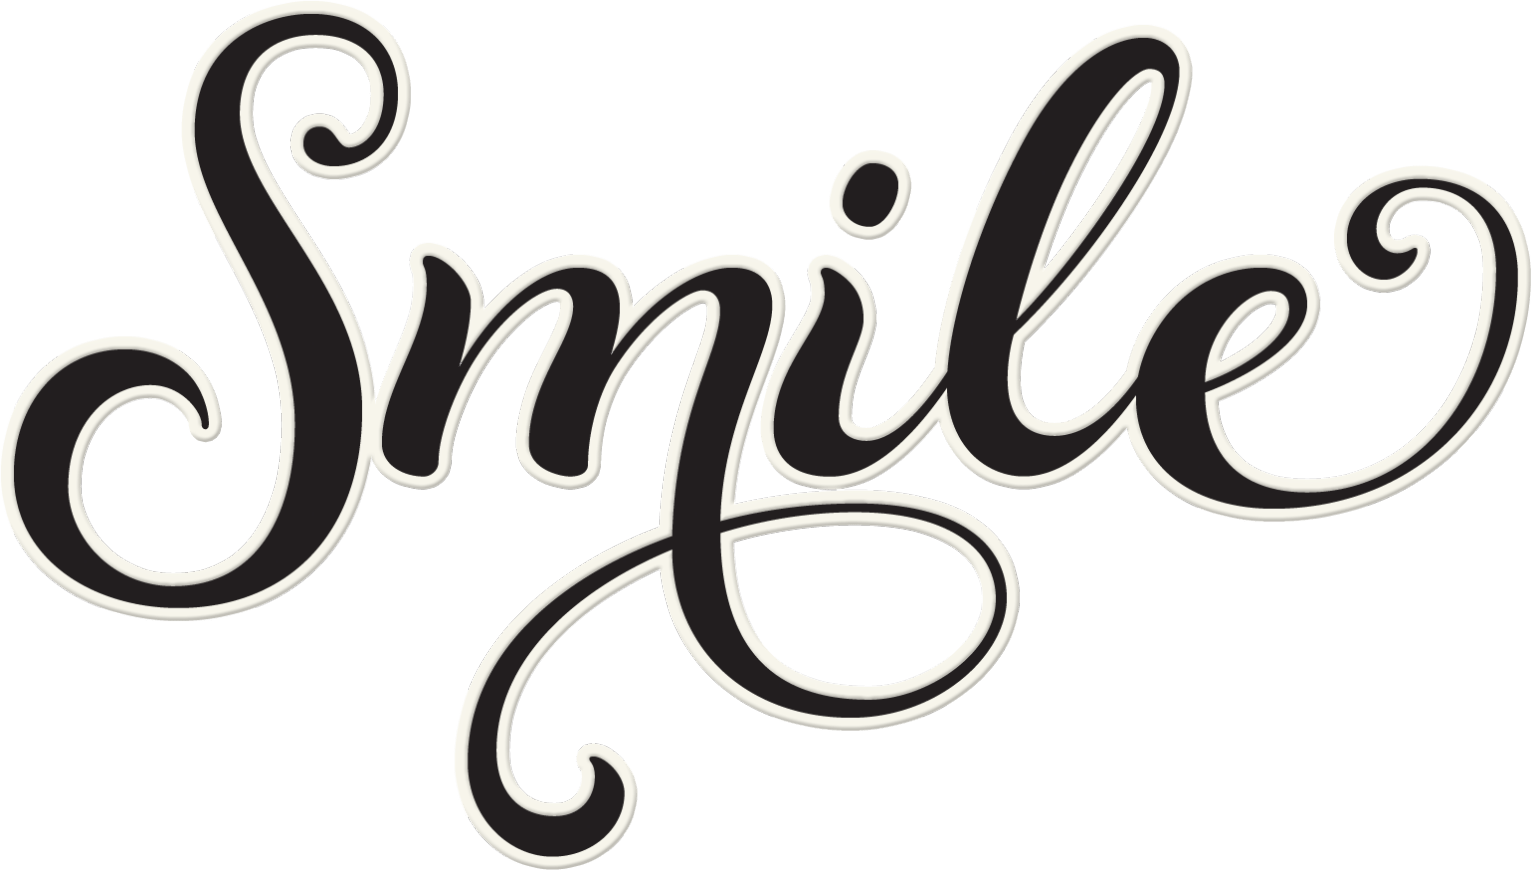 The Word Smile In Cursive